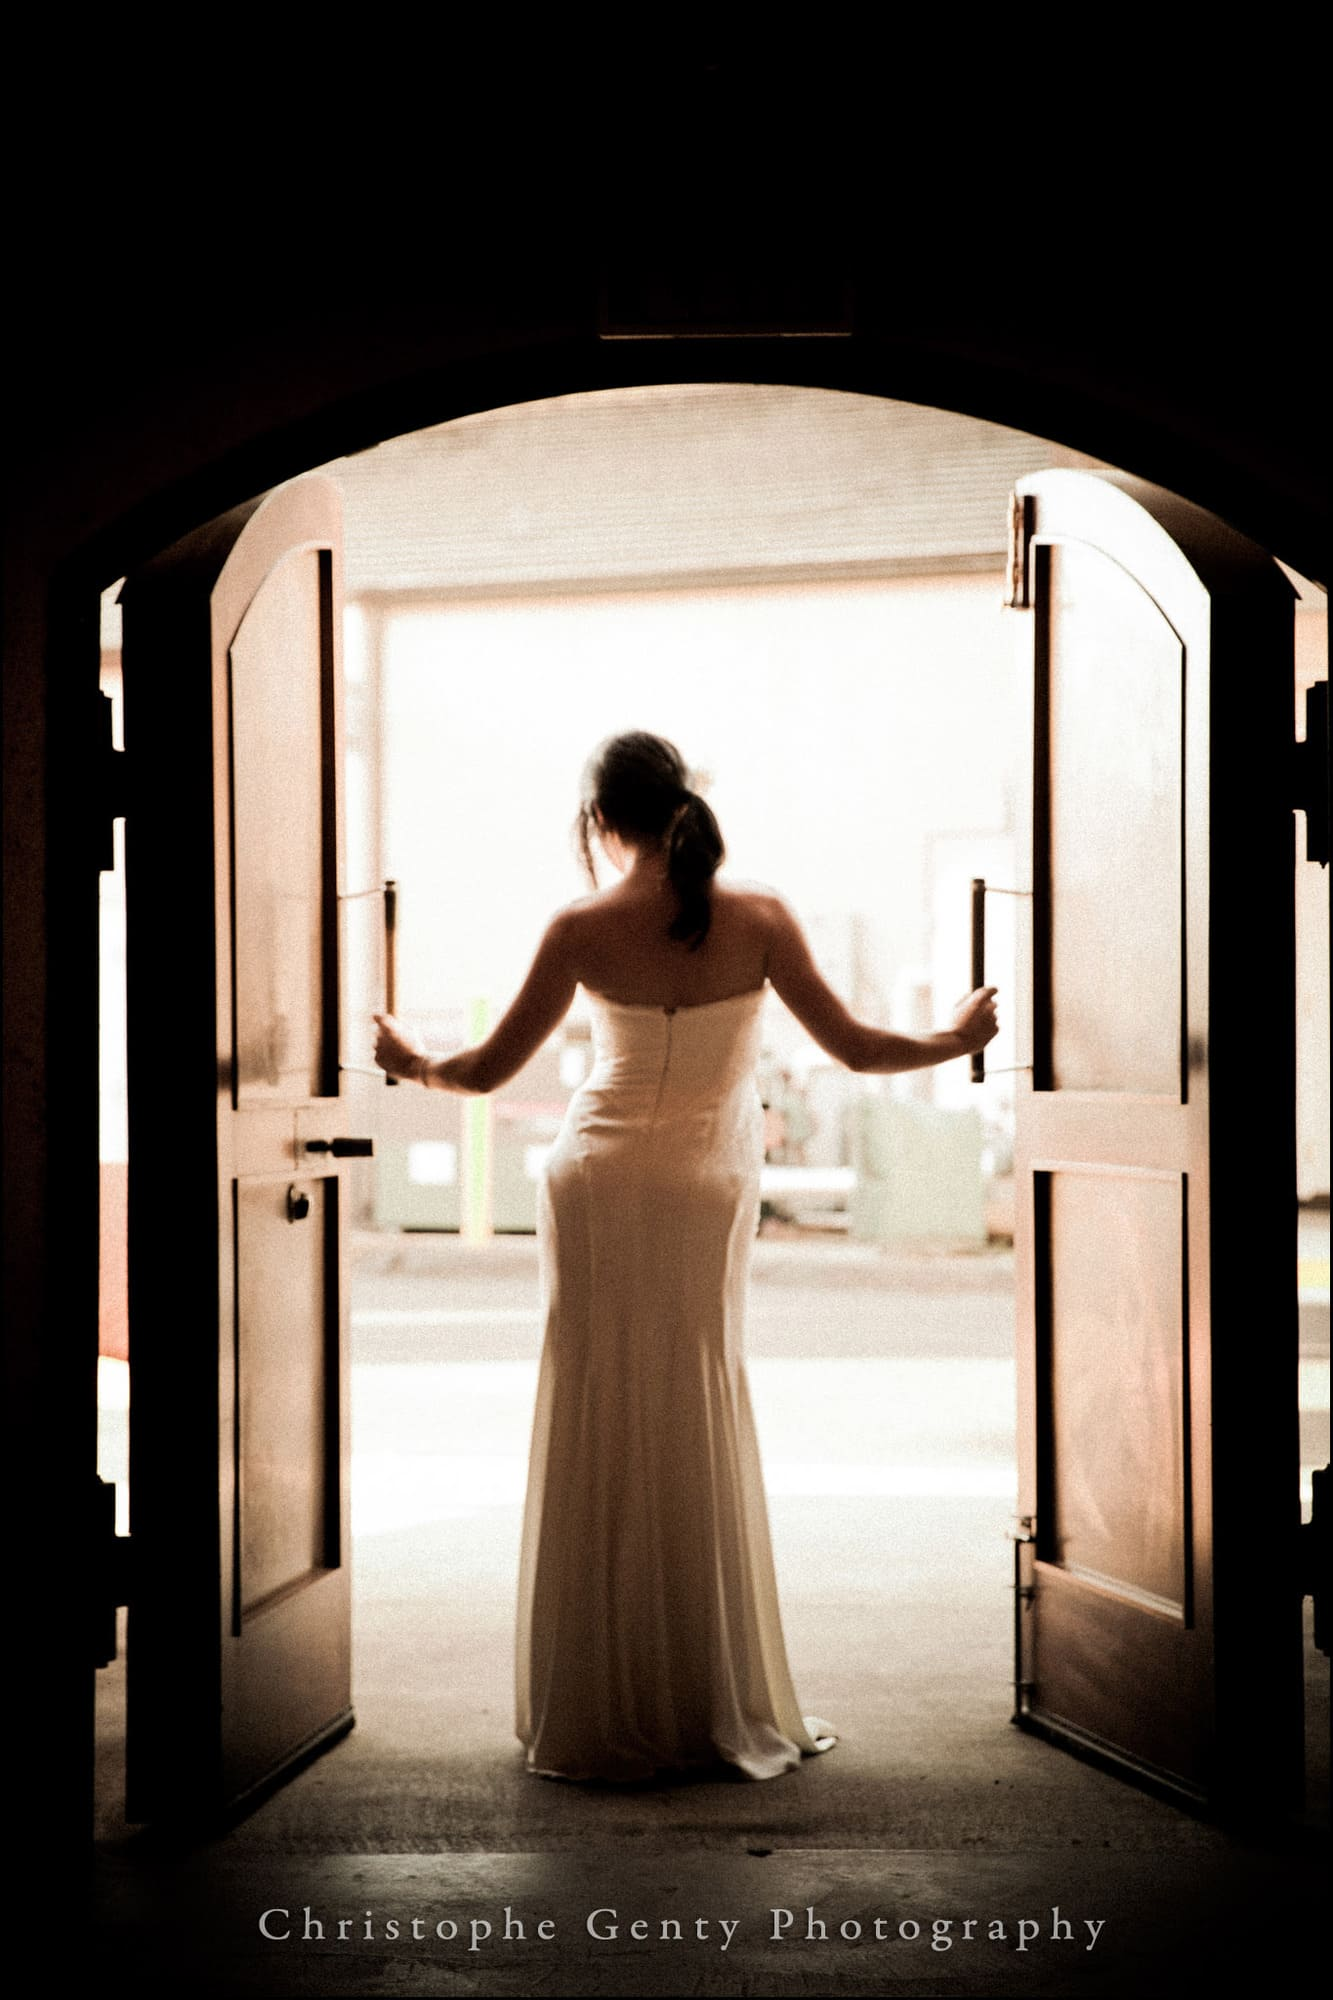 Wedding Photography at Miner Wines in oakville - Tiffany & Jim